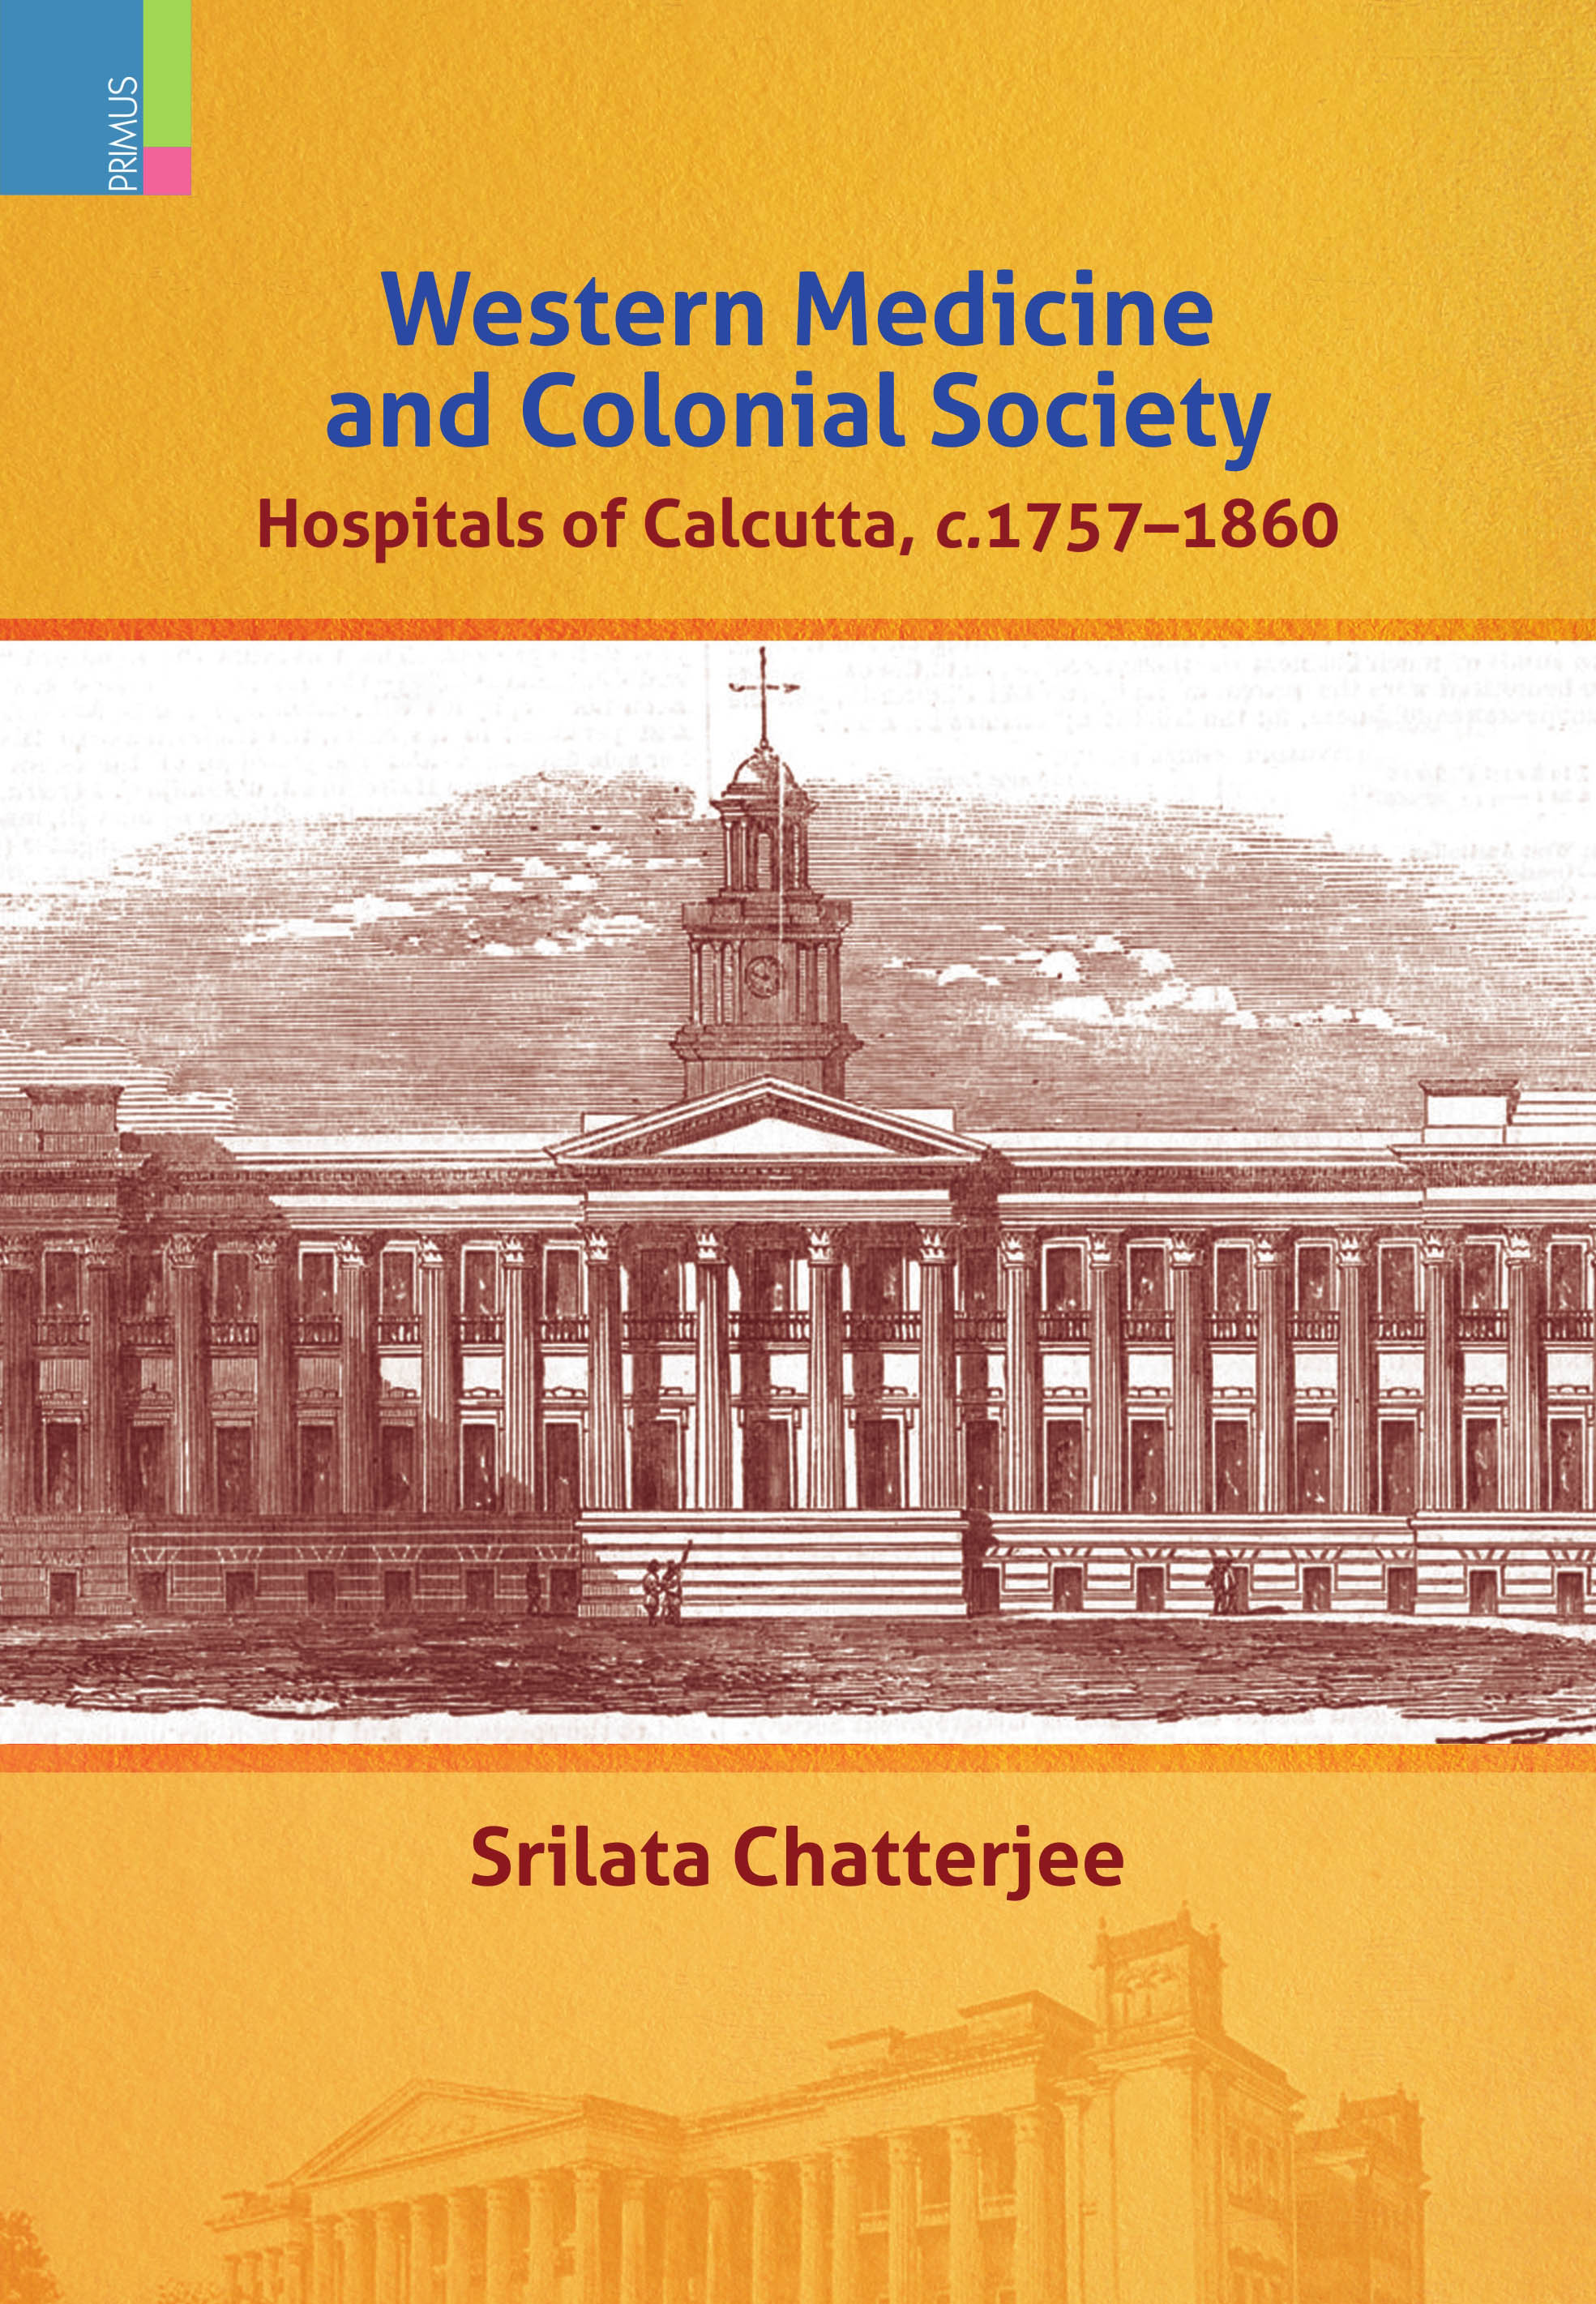 Western Medicine and Colonial Society: Hospitals of Calcutta, c. 1757-1860